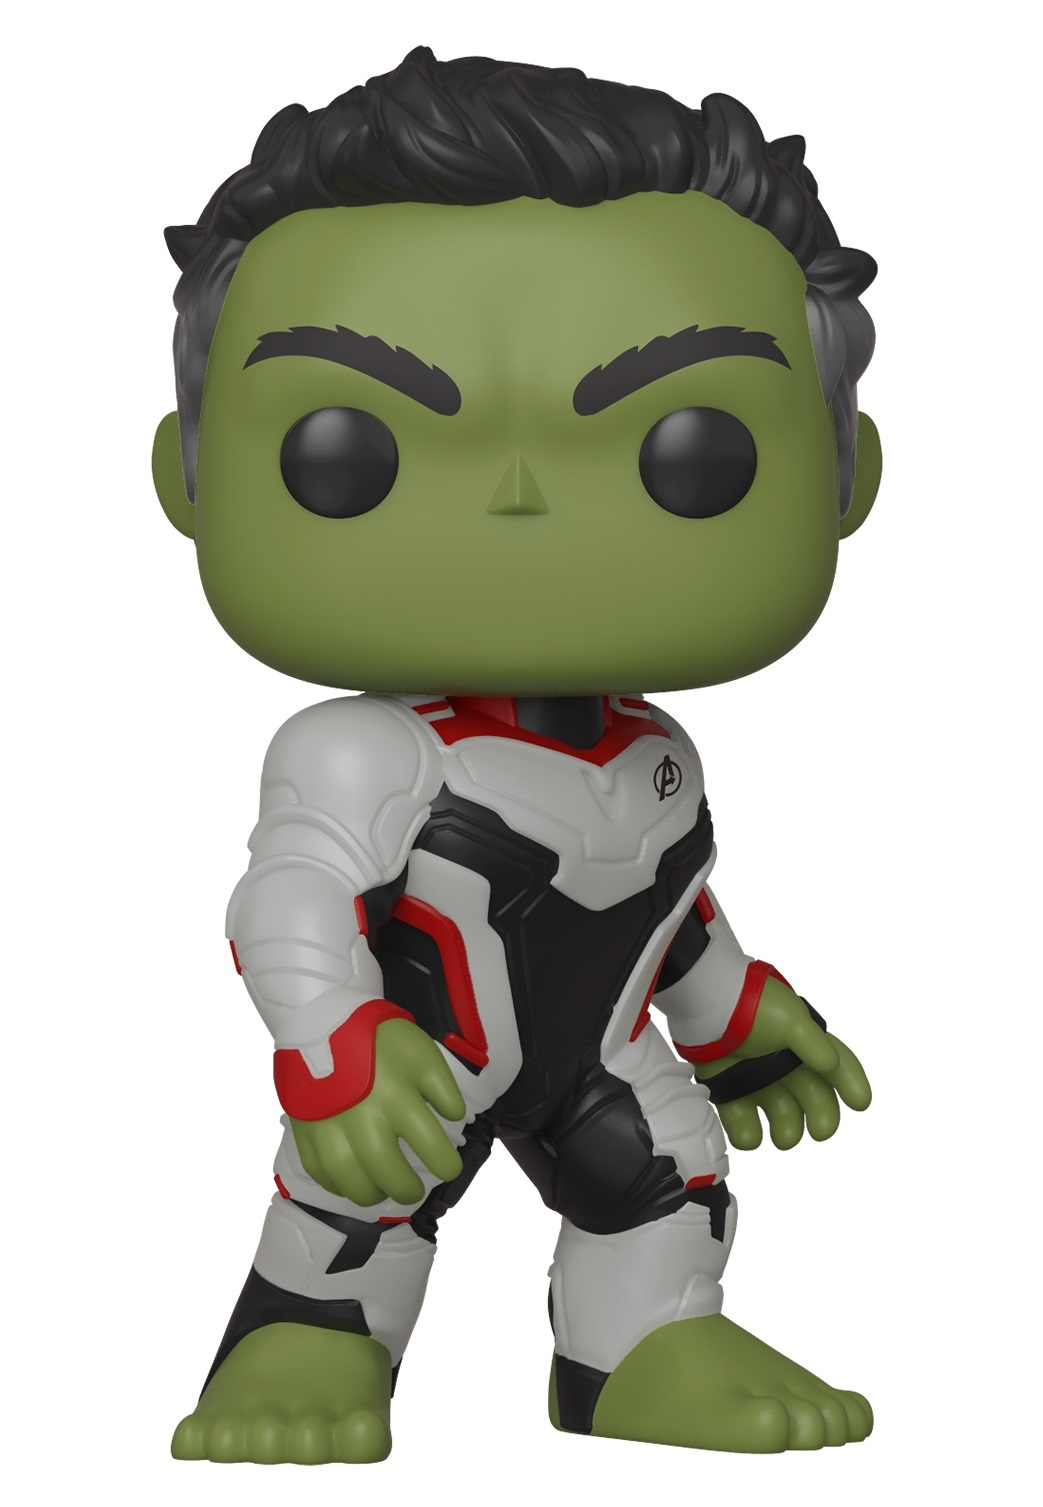 Avengers: Endgame - Hulk (Team Suit) Pop! Vinyl Figure image